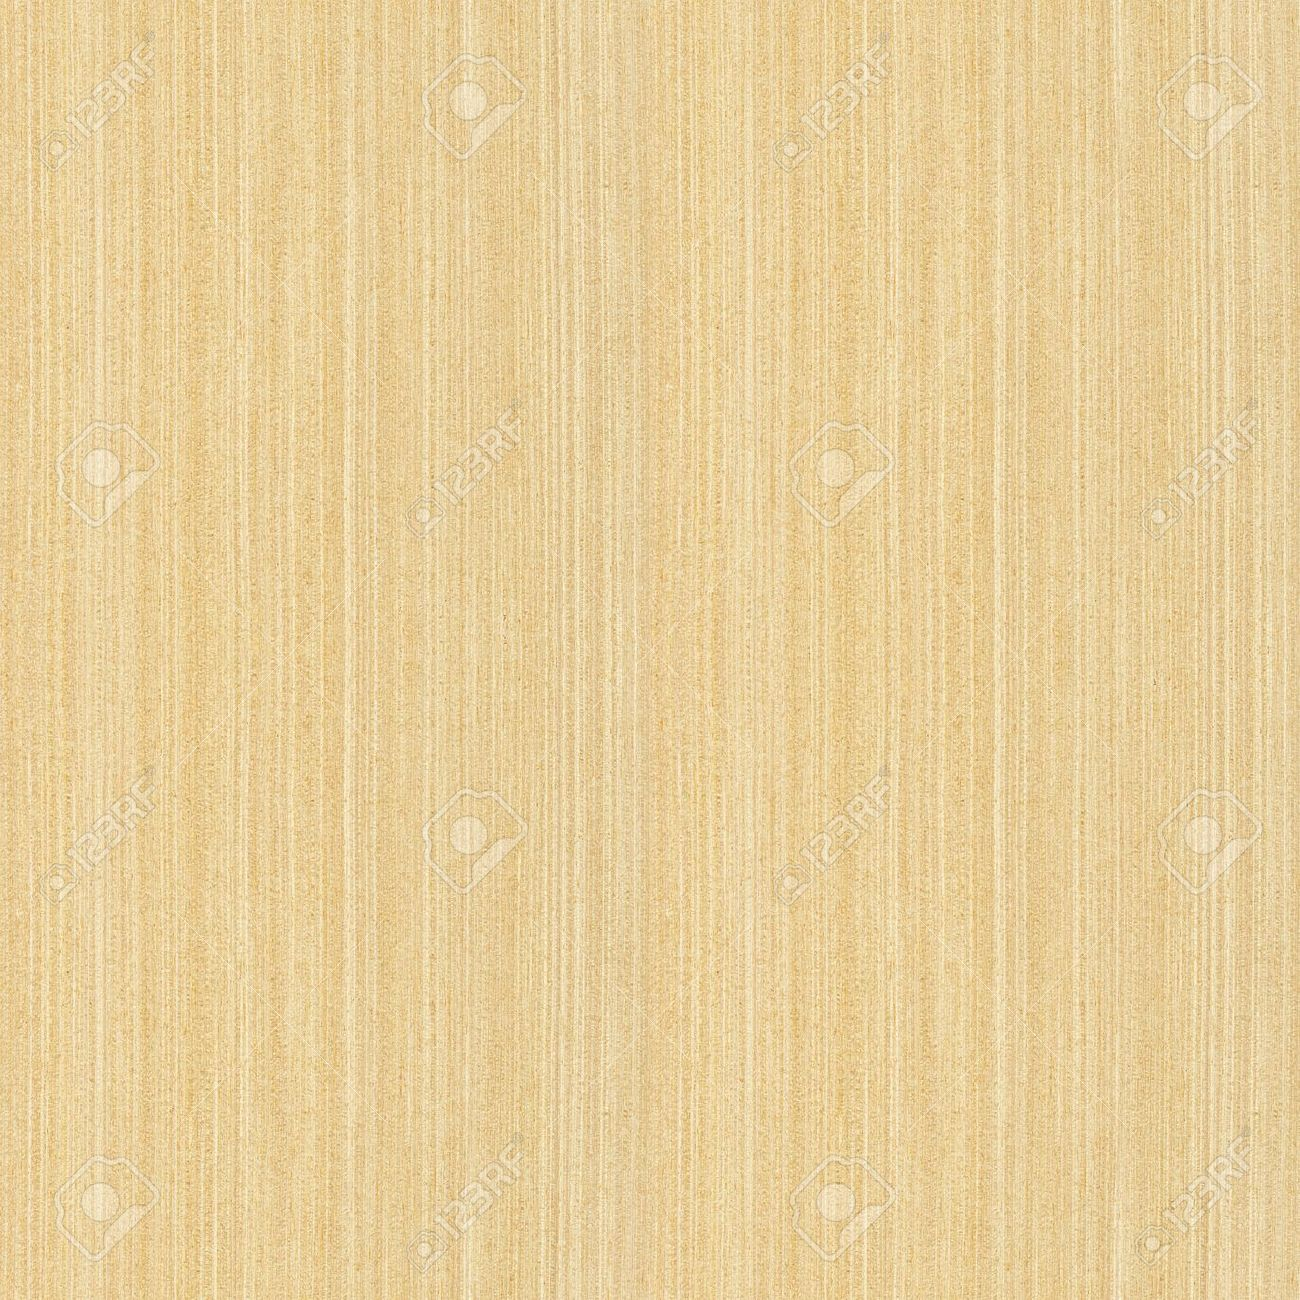 True Seamless Texture Of Maple High Detailed Wood Series